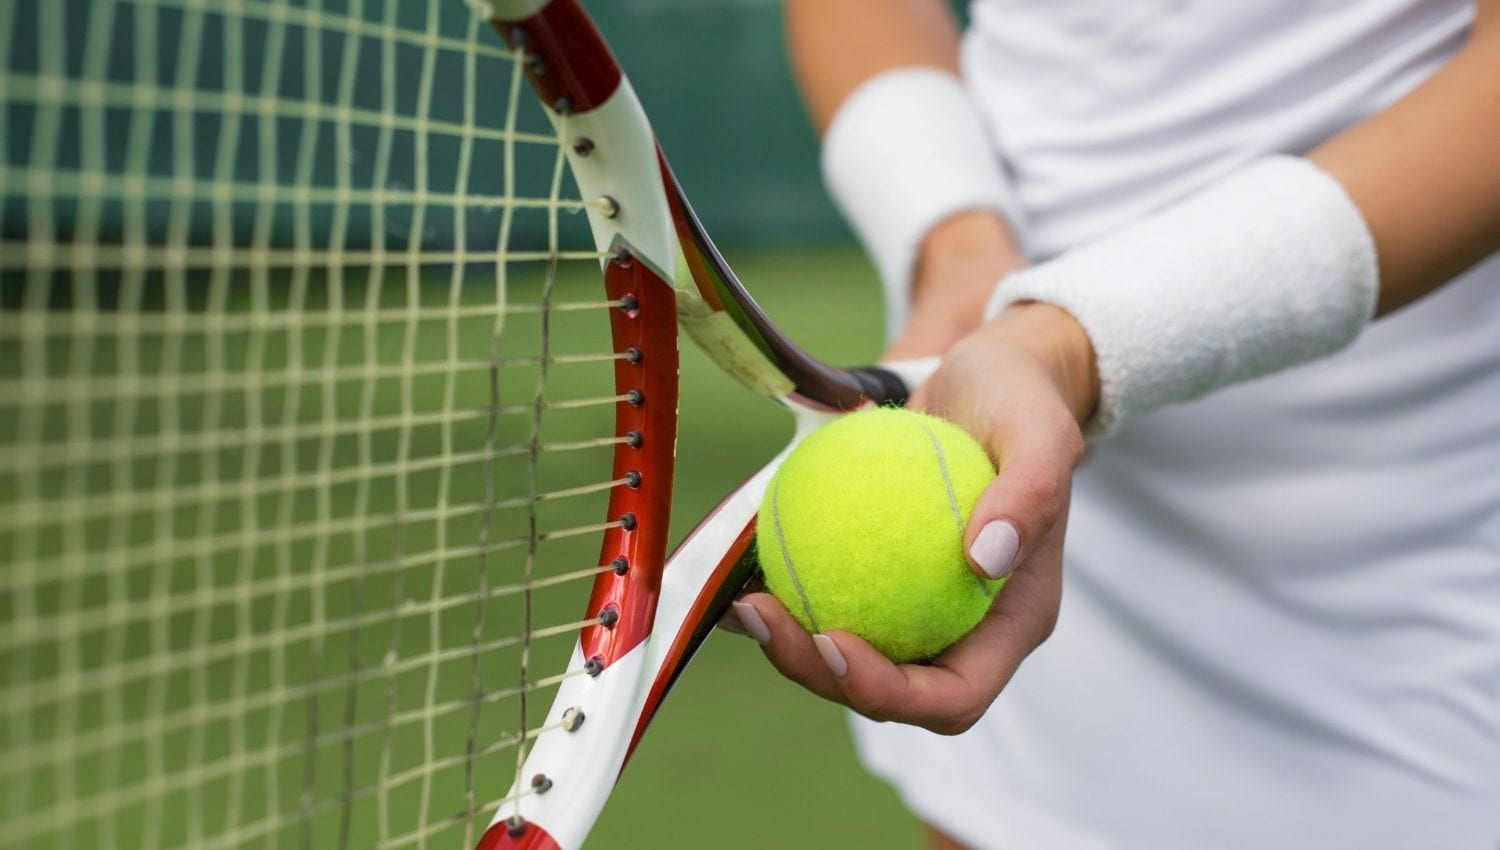 Person with a tennis ball and racket